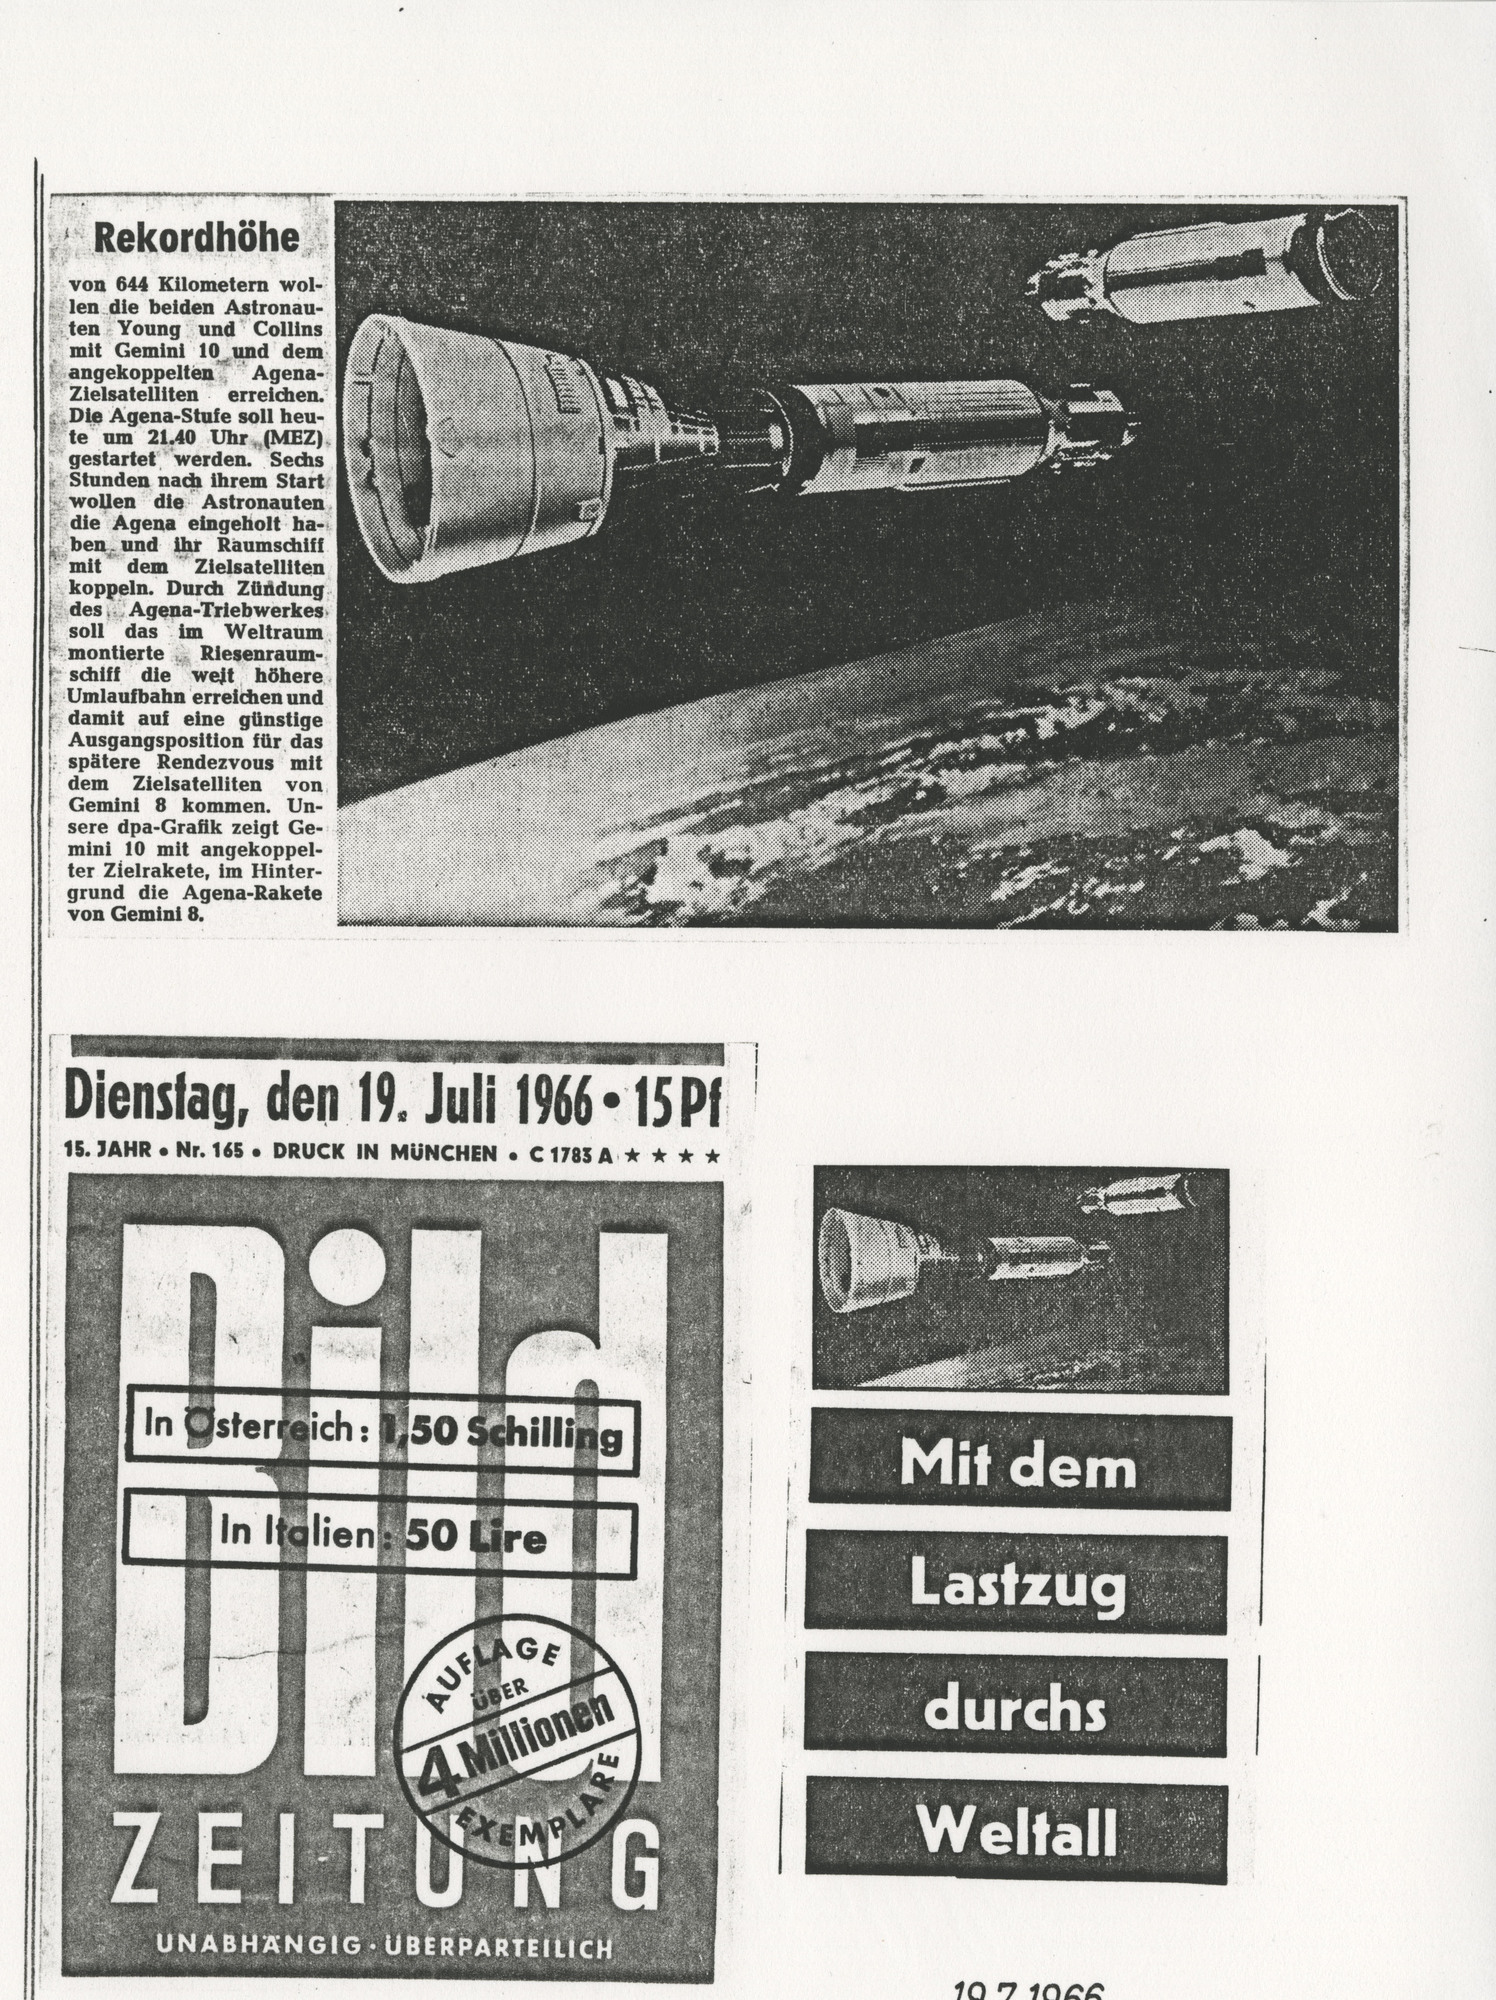 http://spec.lib.vt.edu/pickup/Omeka_upload/Ms1989-029_B07_F3_Clippings_1966_0719_01.jpg